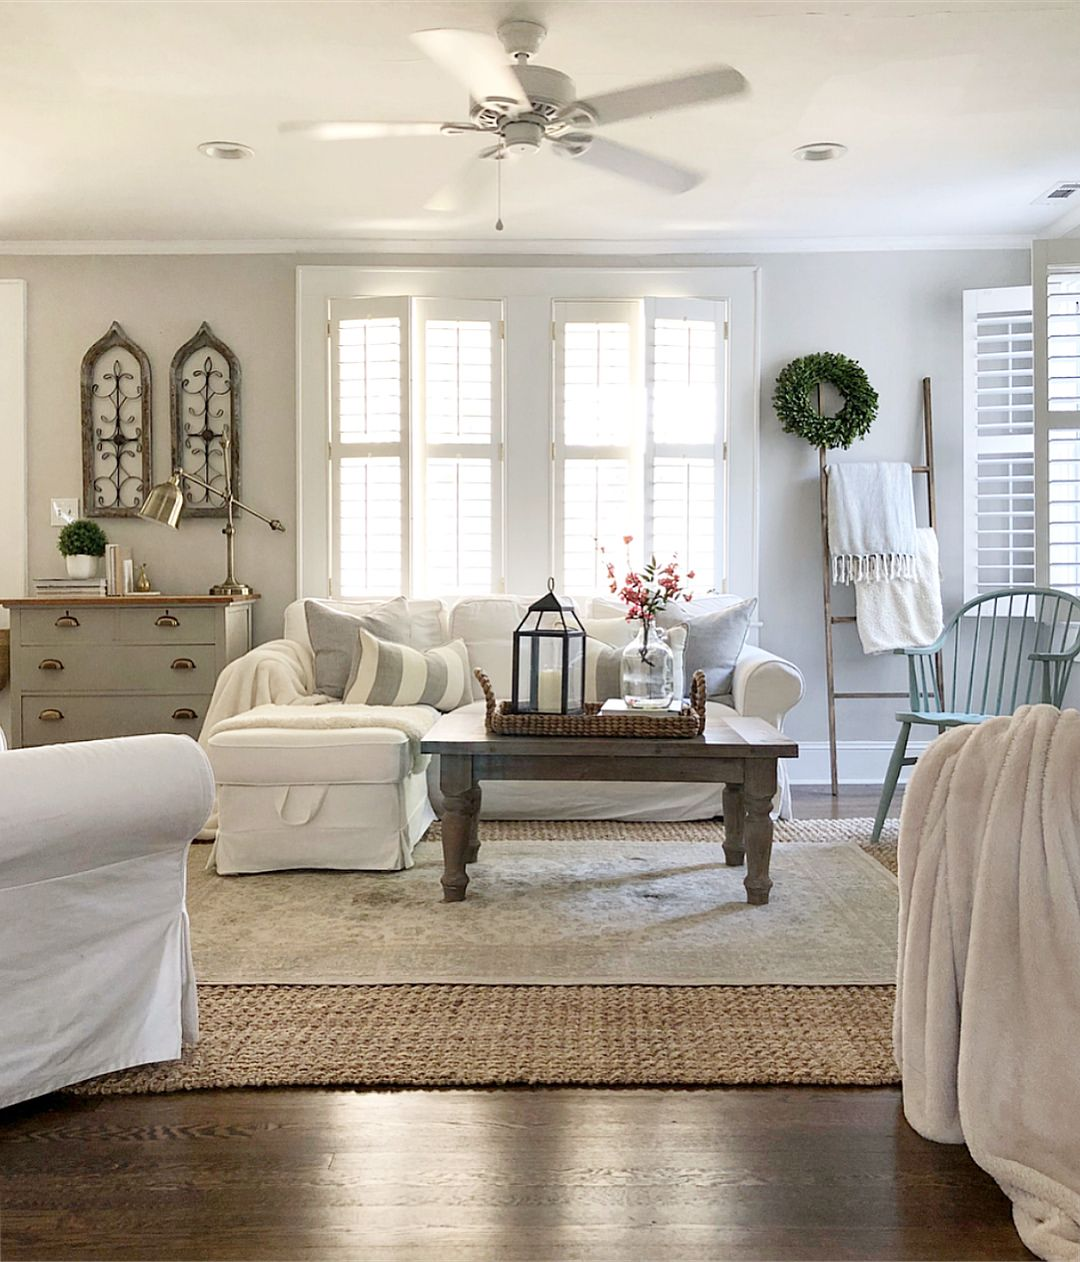 Pin by Naomi Williams on House :) | Pinterest | Happy tuesday ...